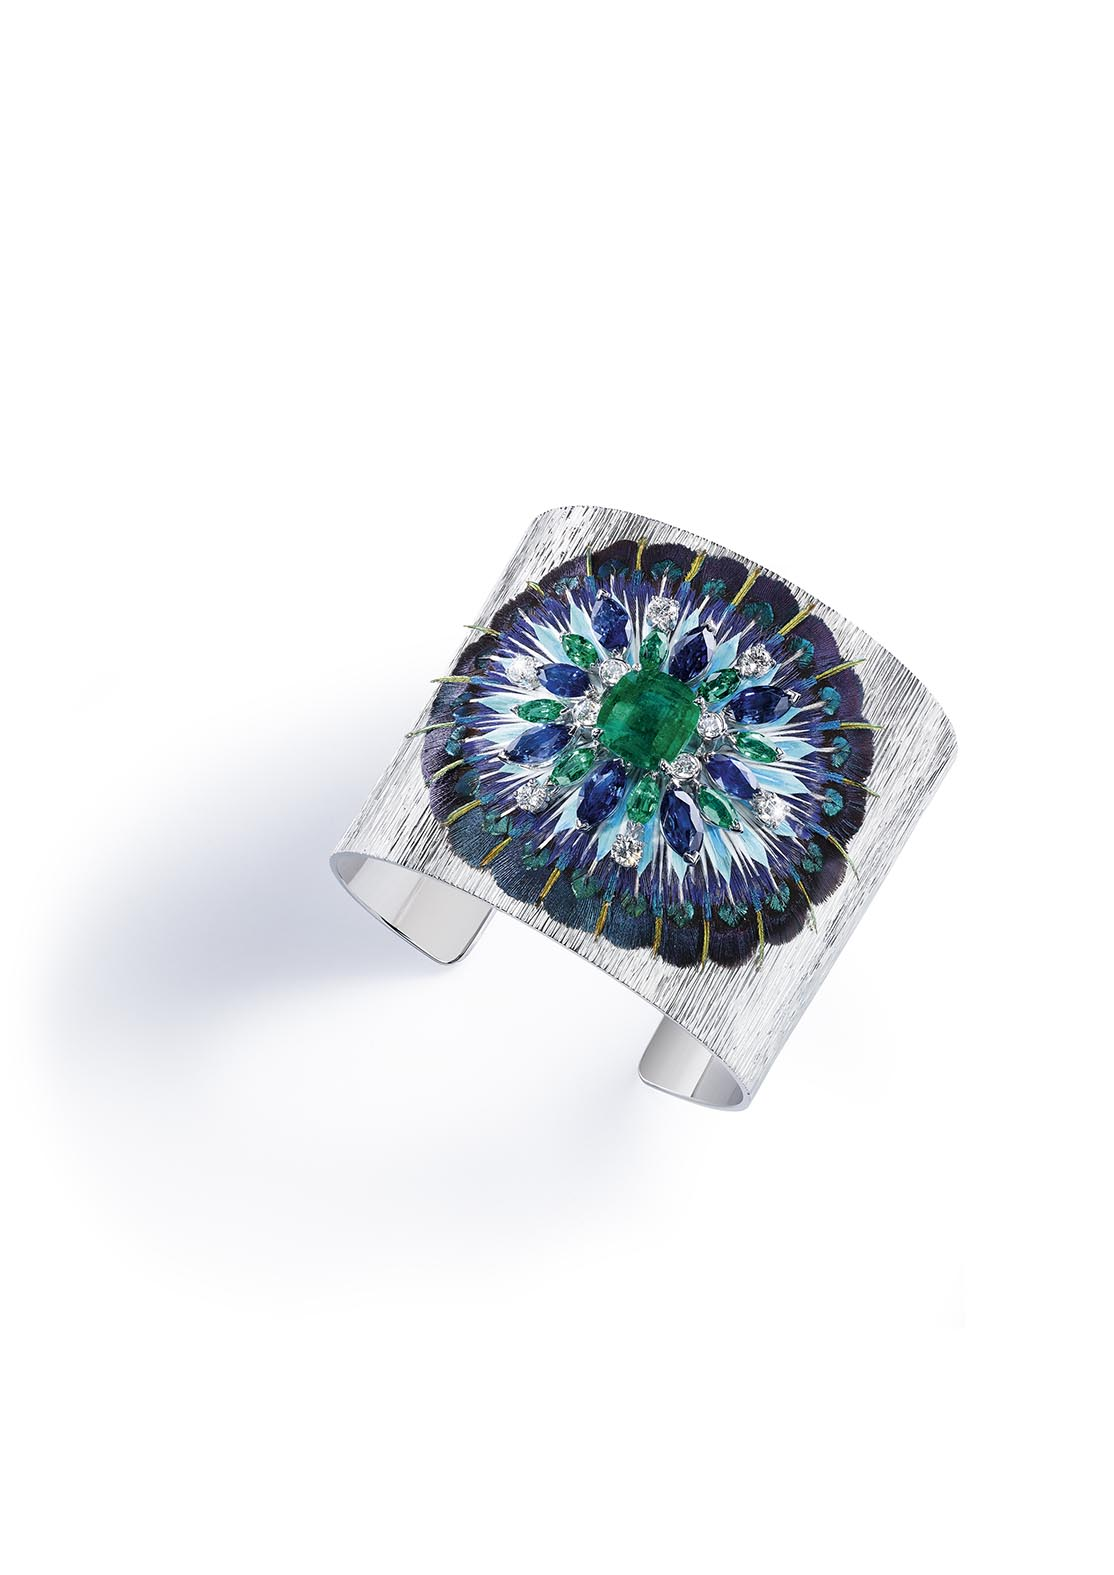 'Secrets and Lights' Piaget collection. Cuff bracelet in 18K white gold set with one cushion-cut emerald (approx. 3.46 ct), 8 marquise-cut emeralds (approx. 4.80 ct), 8 marquise-cut blue sapphires (approx. 7.66 ct), 10 brilliant-cut diamonds (approx. 1.08 ct) and feathers.